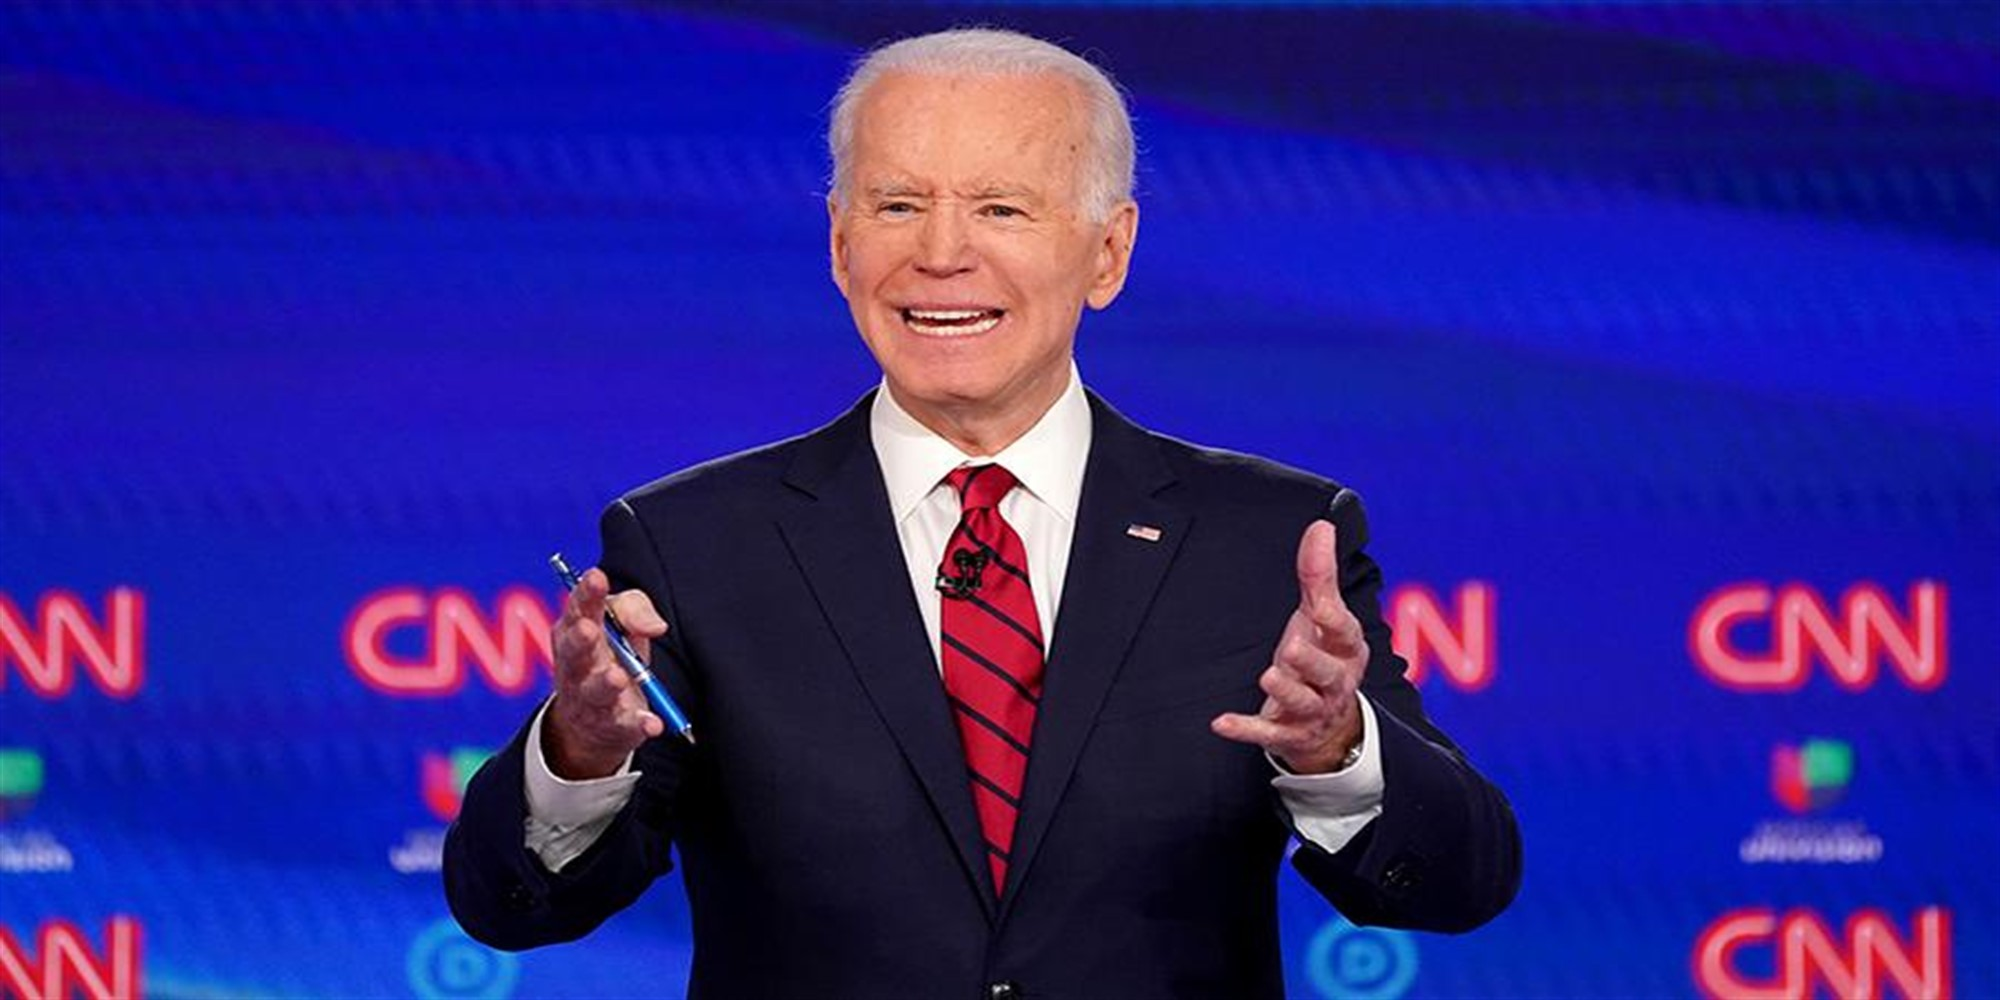 Democratic presidential candidate and former Vice President Joe Biden beat incumbent US leader Donald trump in the election race by 5%. This was reported